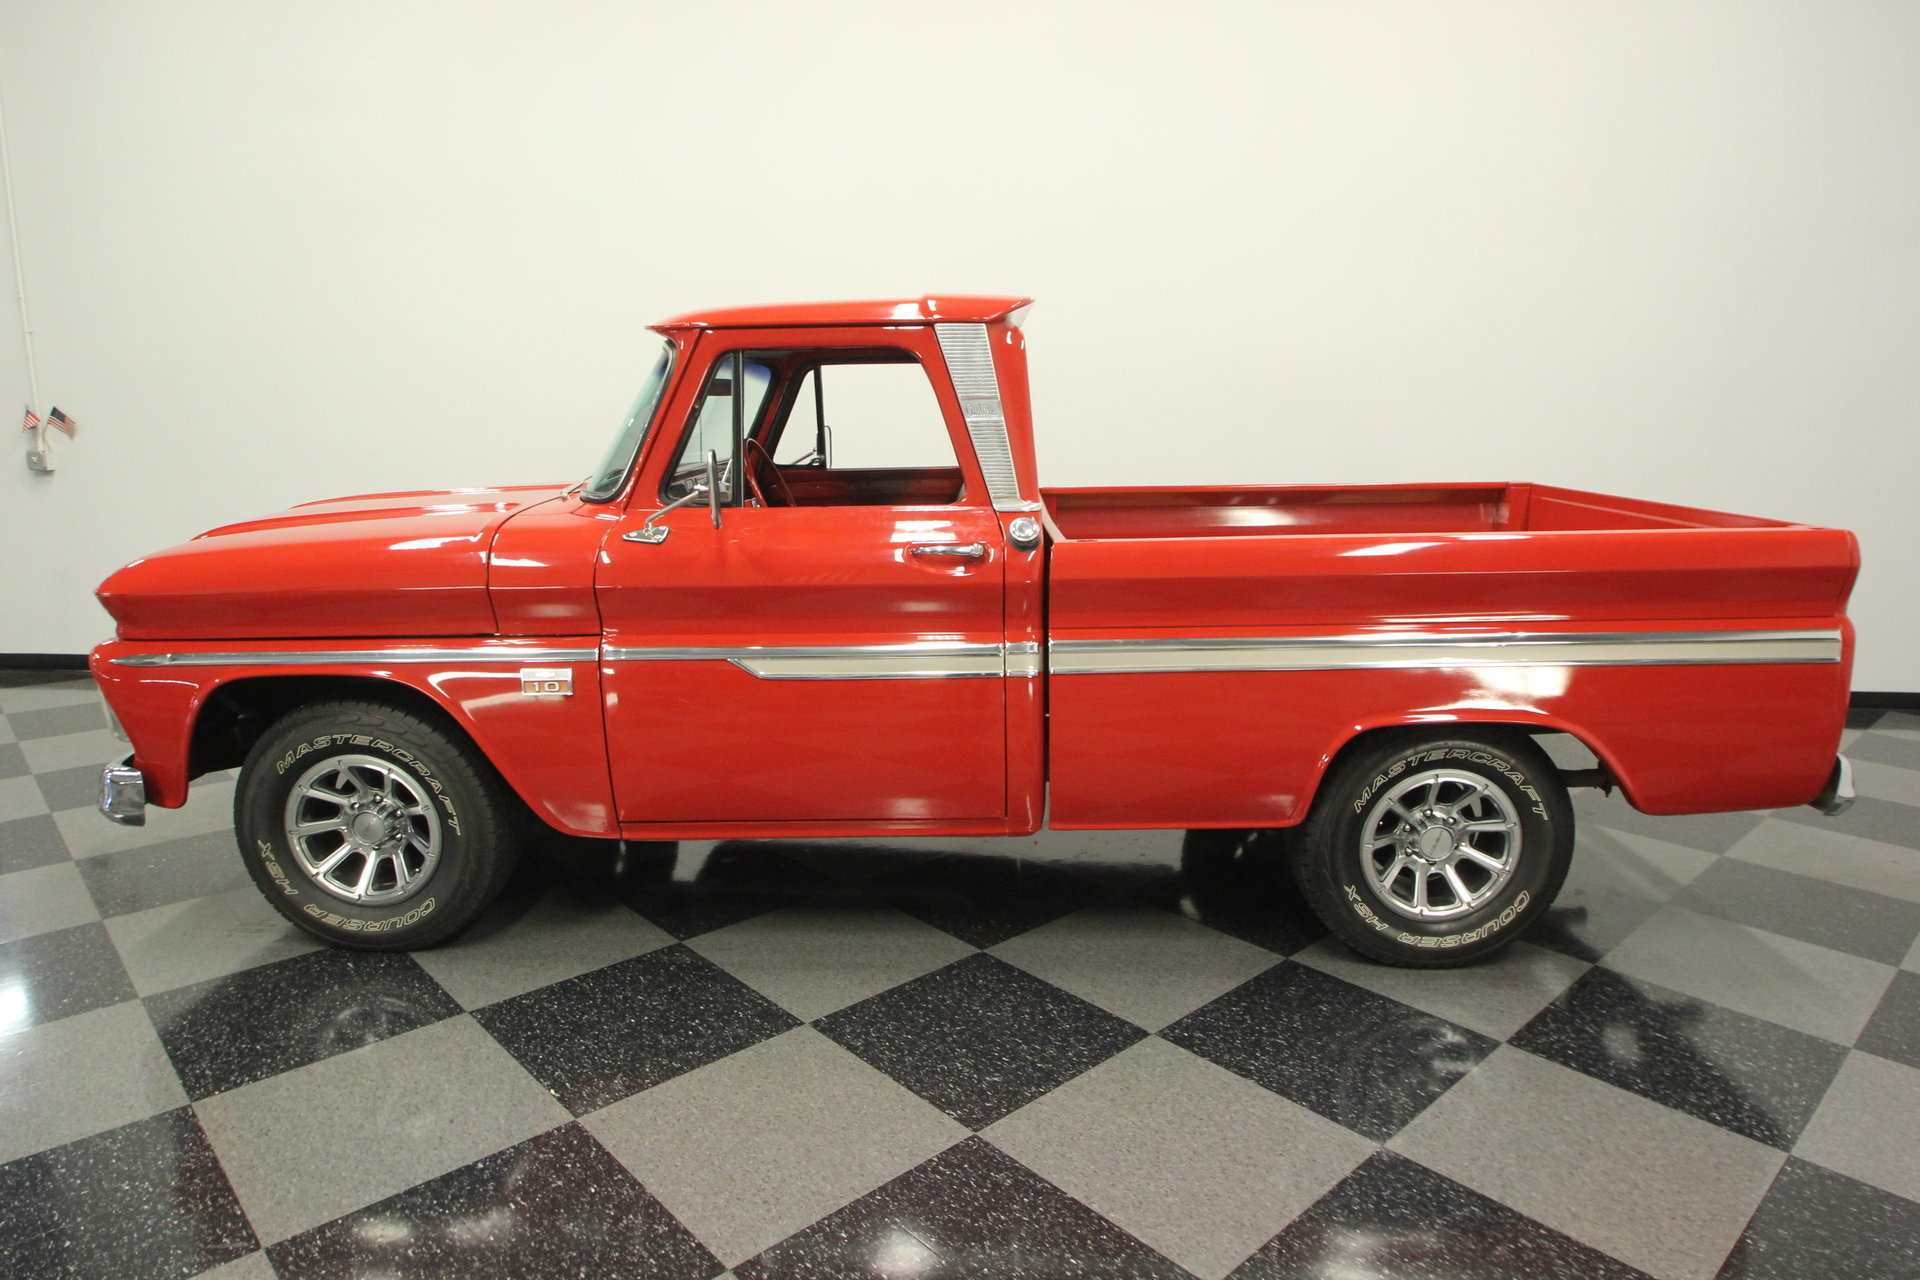 1966 Chevrolet C10 Streetside Classics The Nations Trusted Pick Up Show More Photos